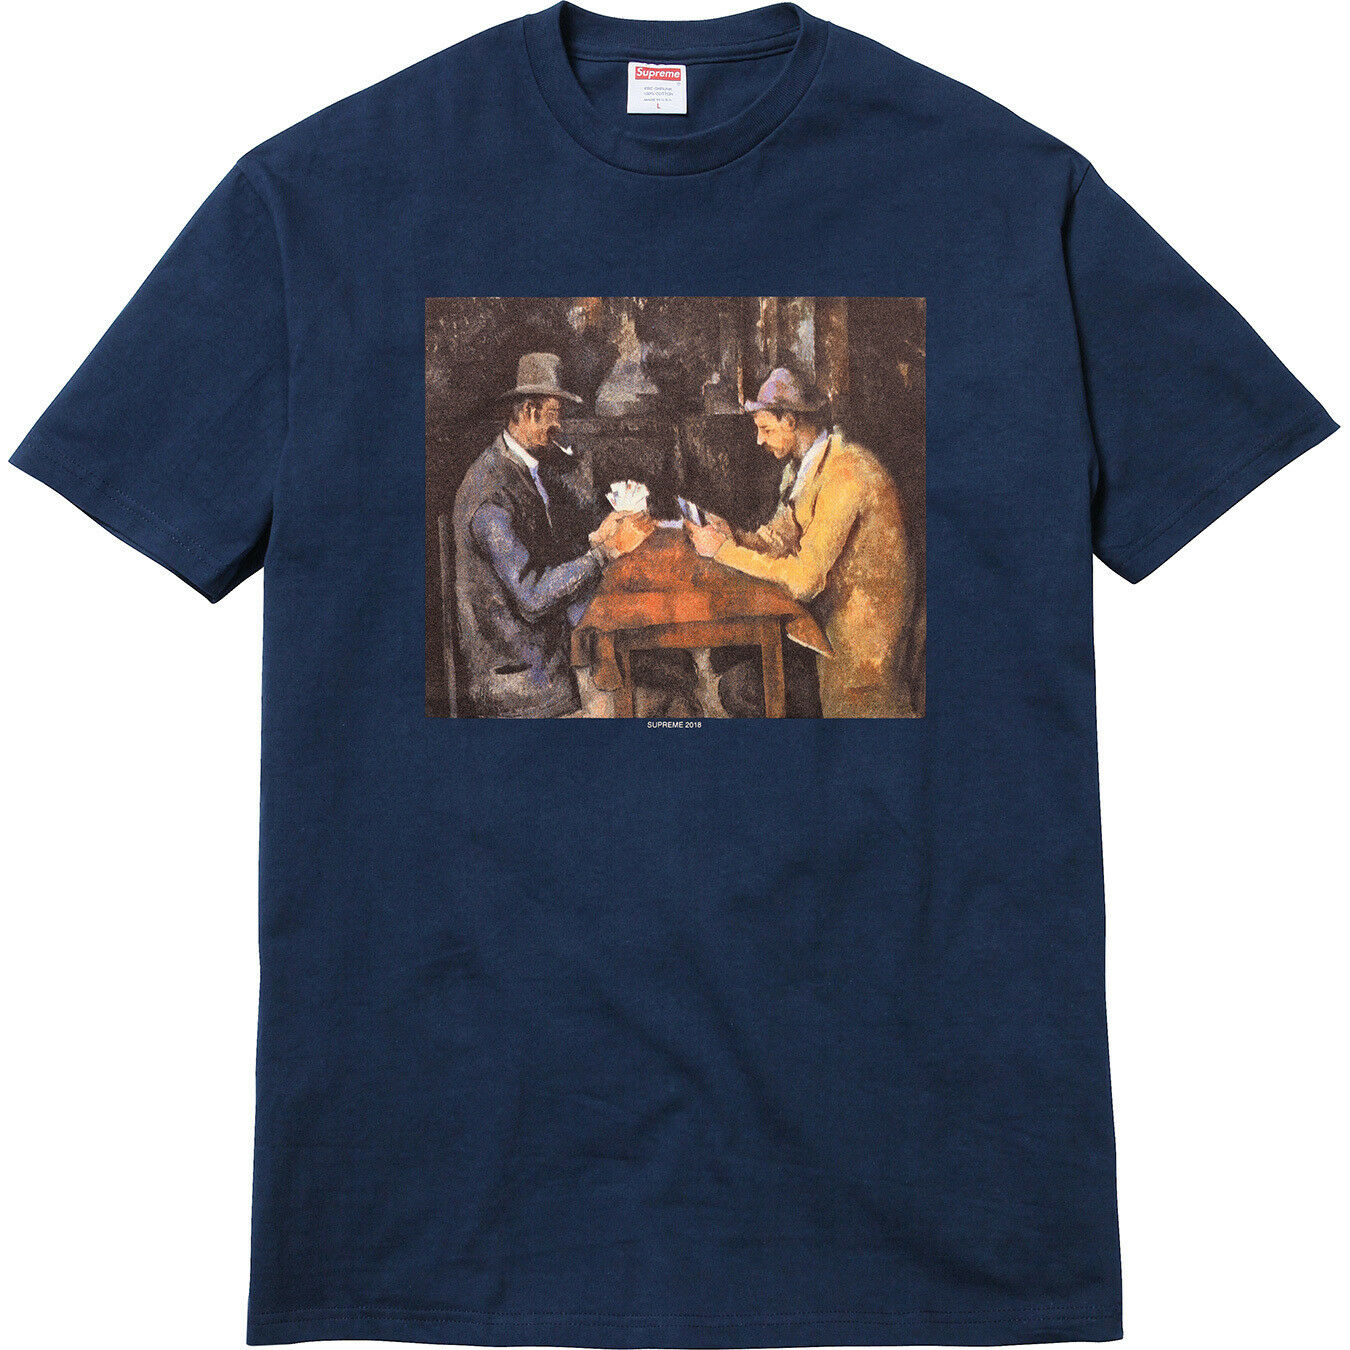 SUPREME CARDS Tee Navy bluee XL SS 2018 T-SHIRT The Card Players by Paul Cézanne